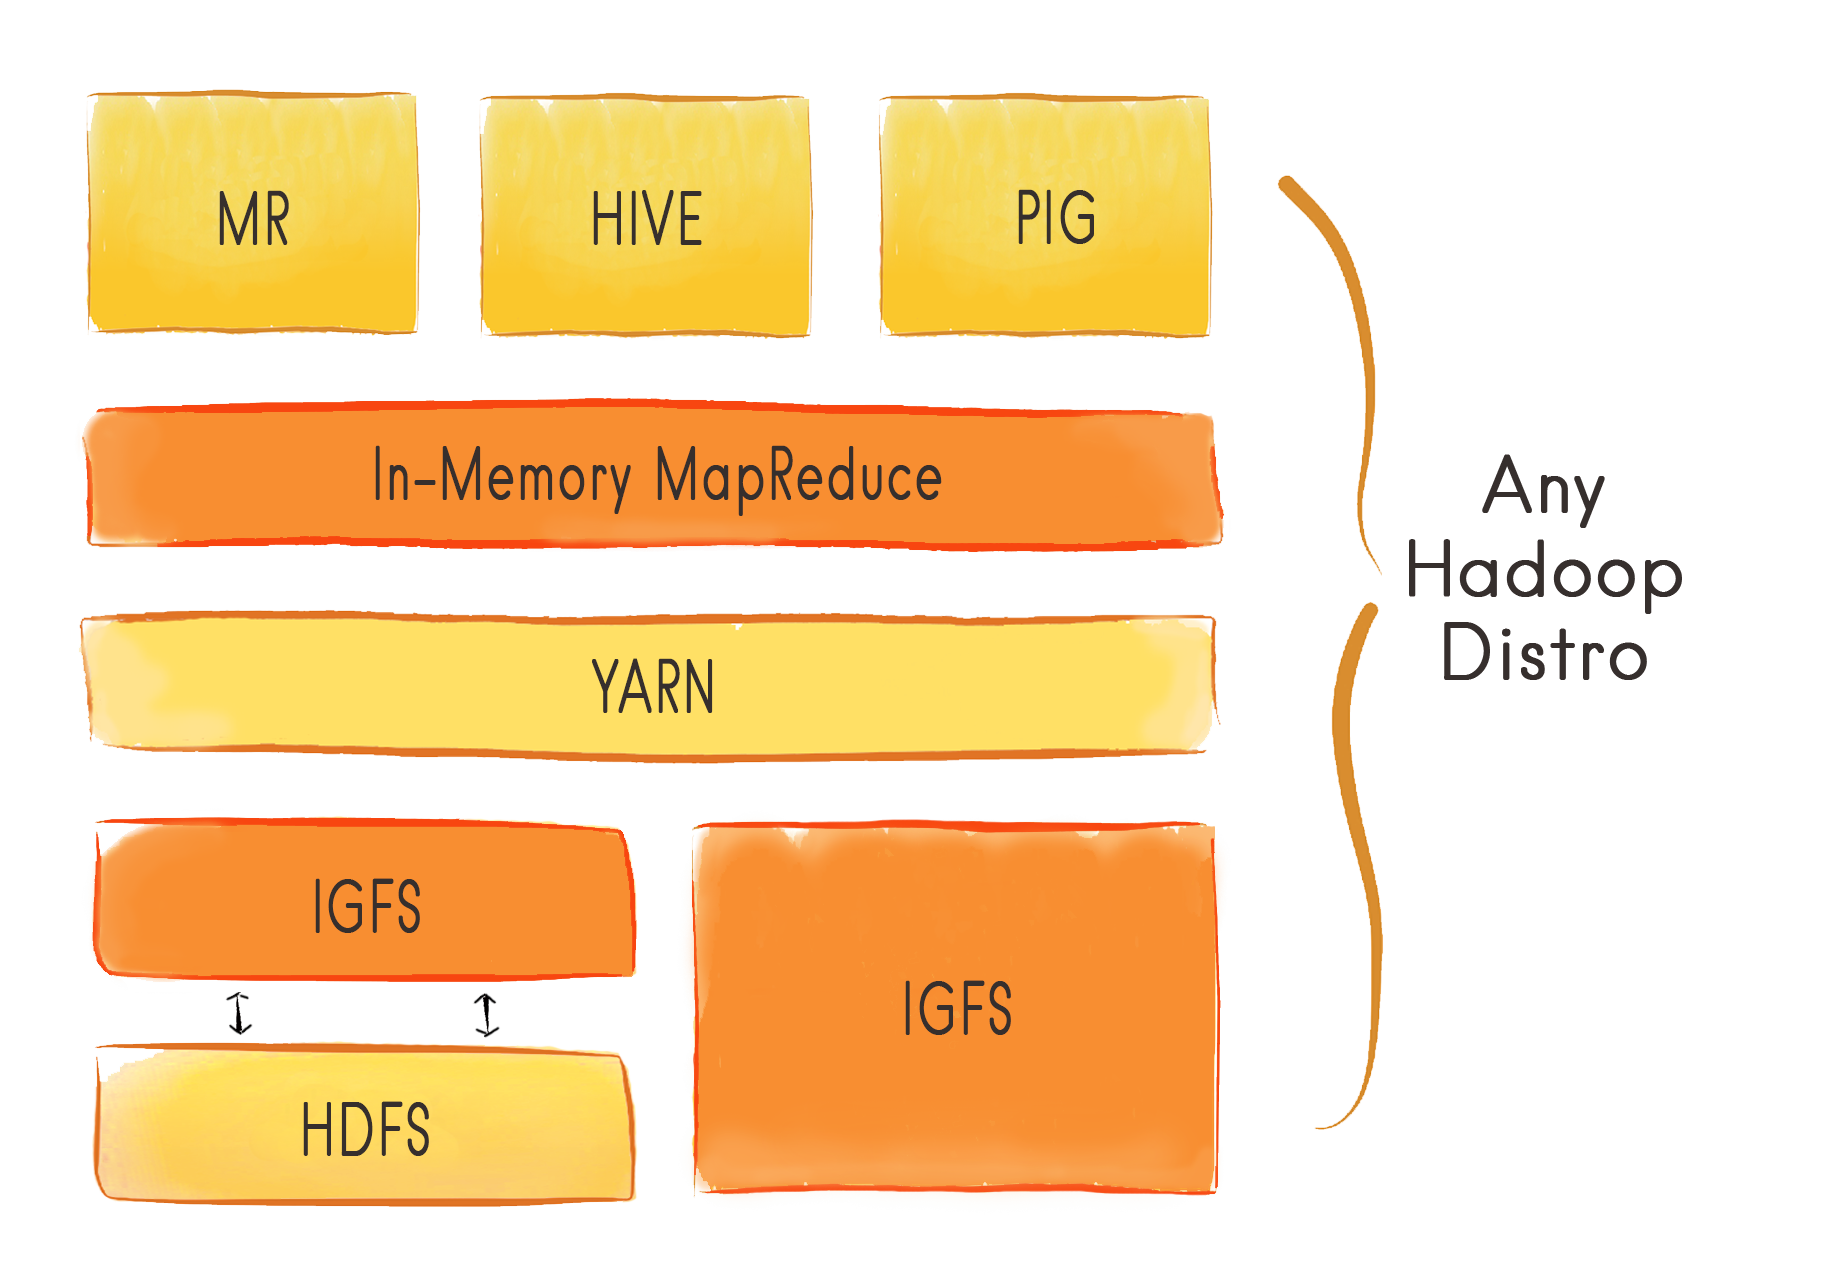 IGFS - In-Memory FileSystem